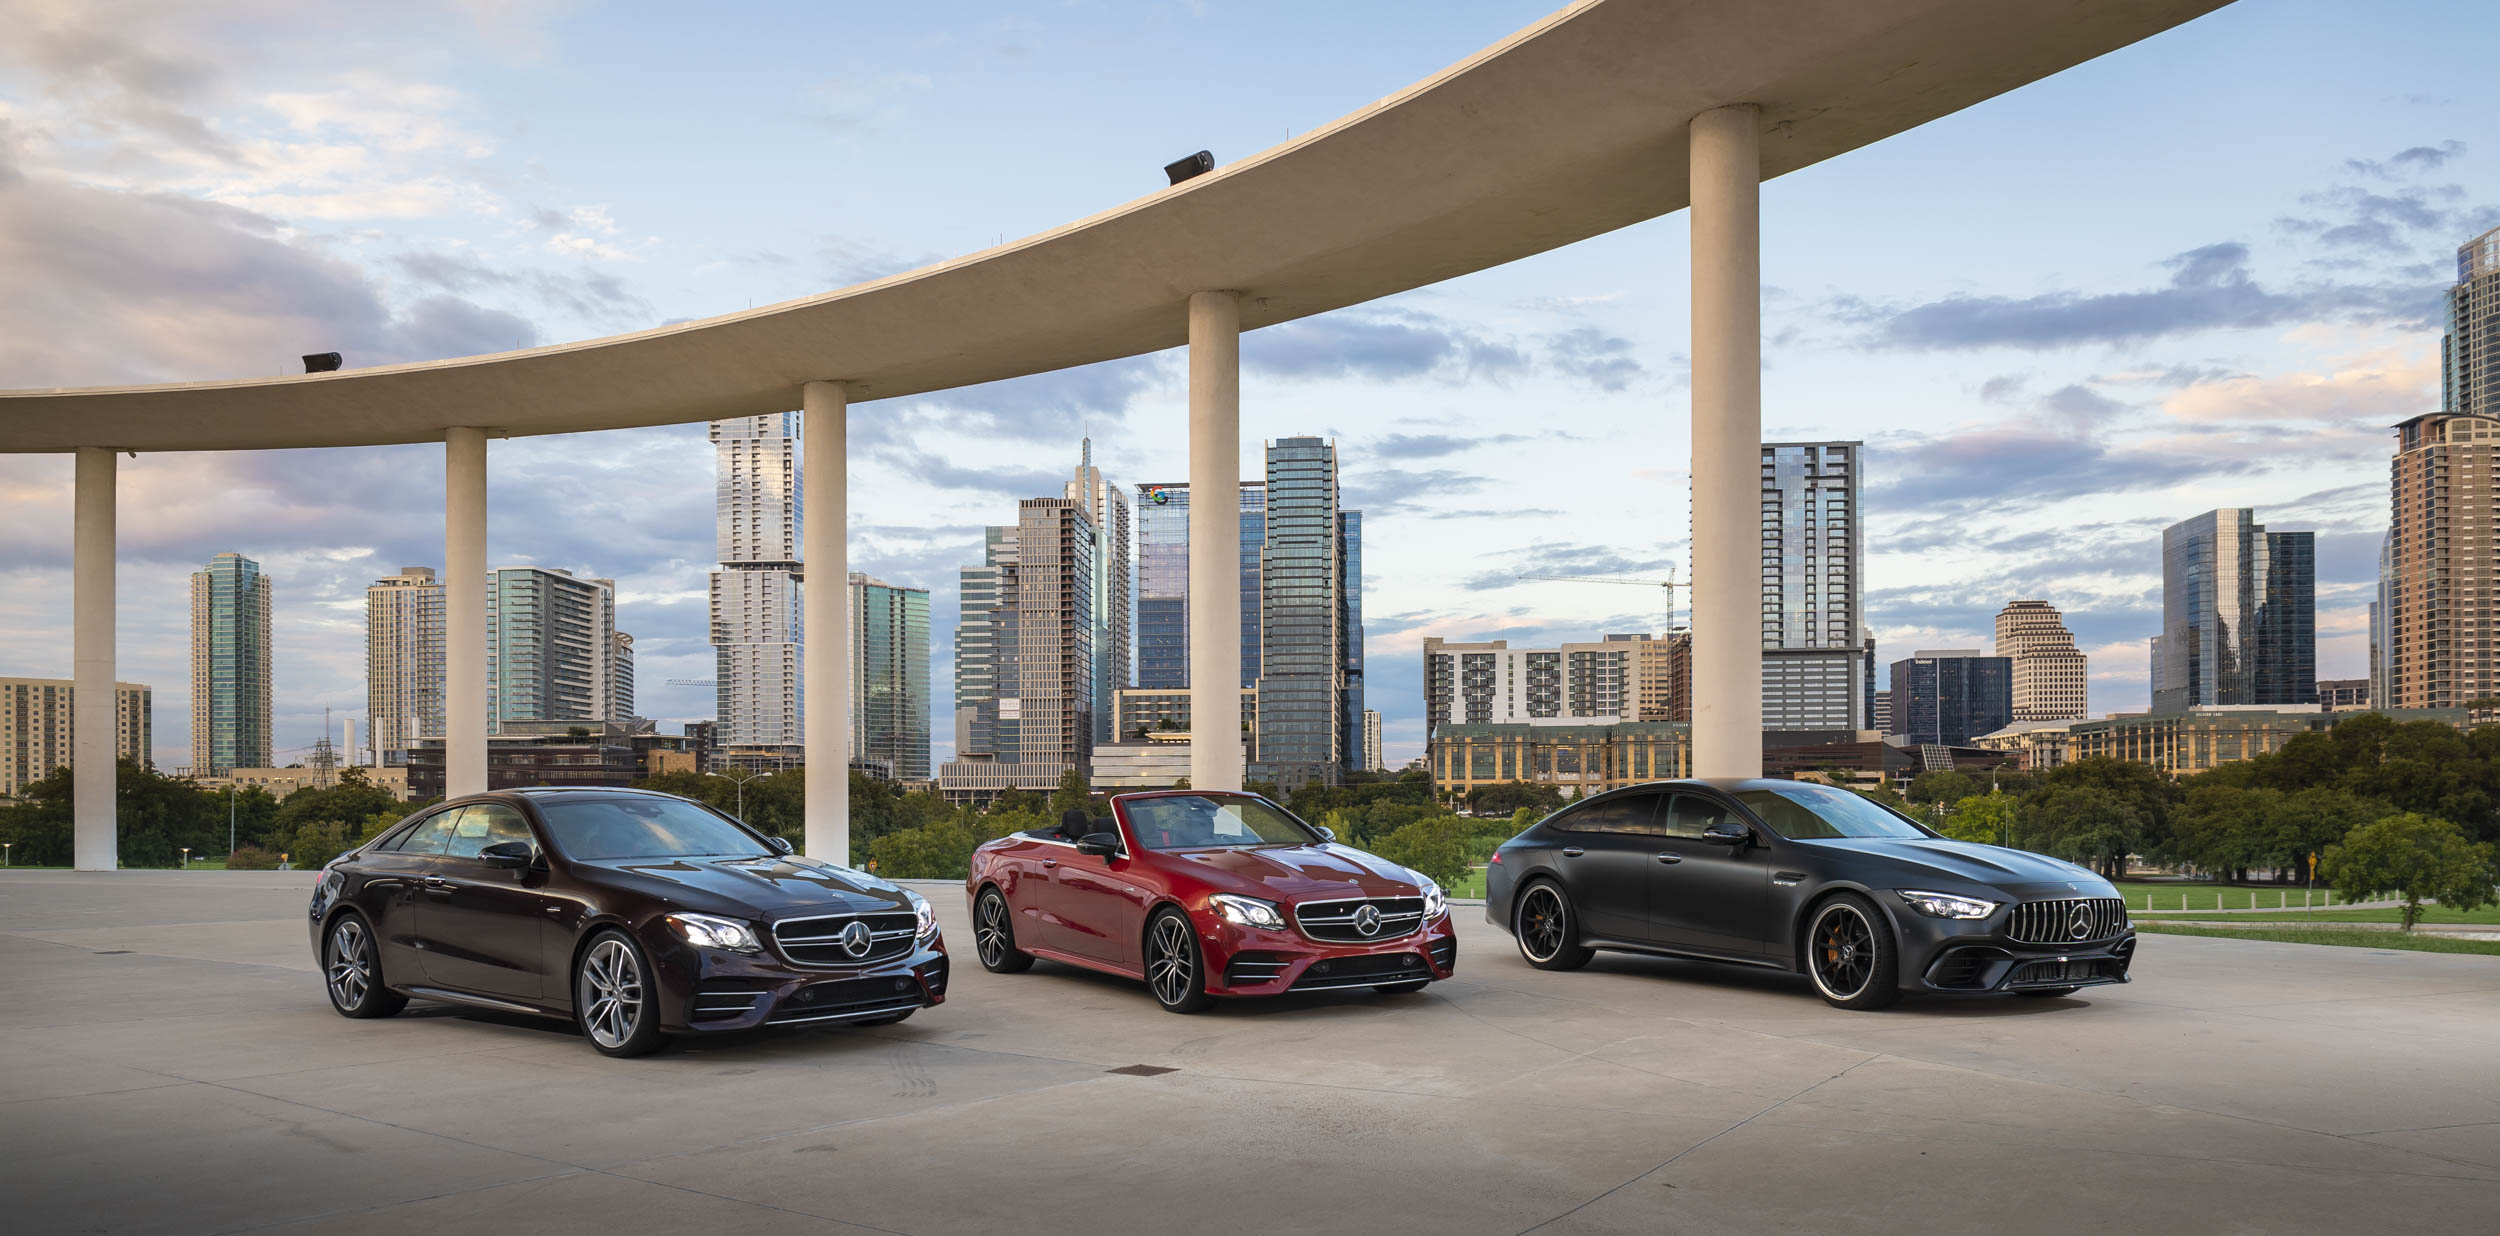 Mercedes-AMG GT 63 S coupe, sedan, and convertible options